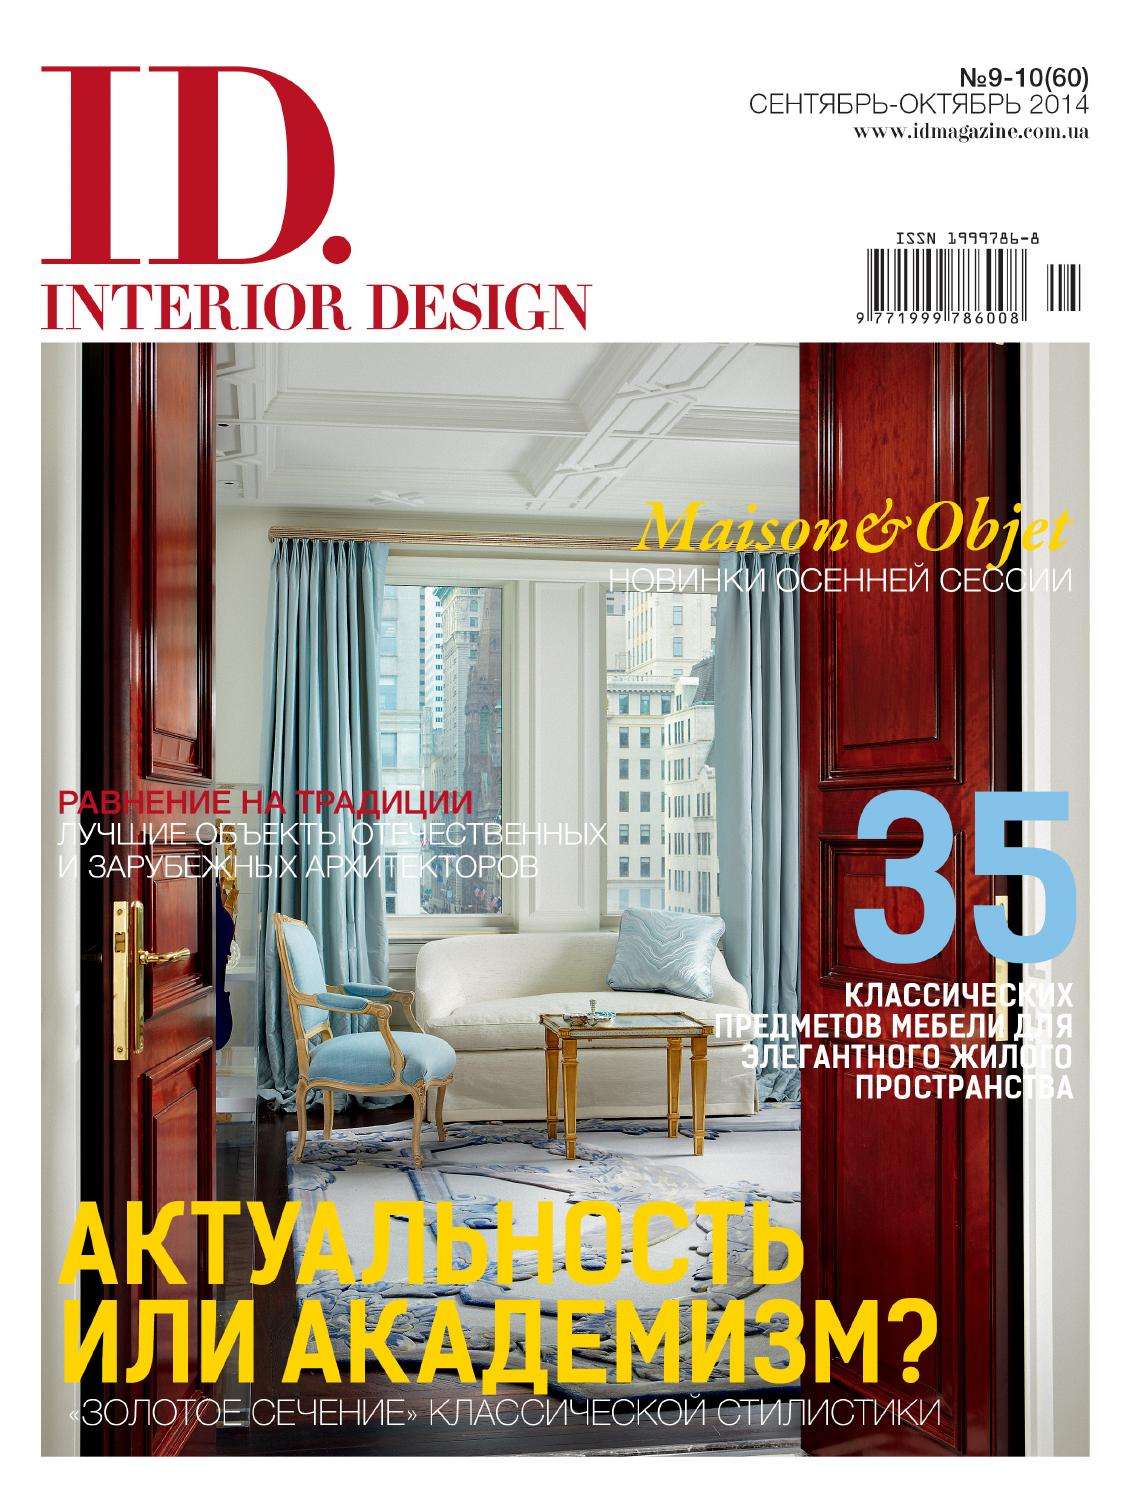 id interior design september october 2014 by id magazine issuu. Black Bedroom Furniture Sets. Home Design Ideas